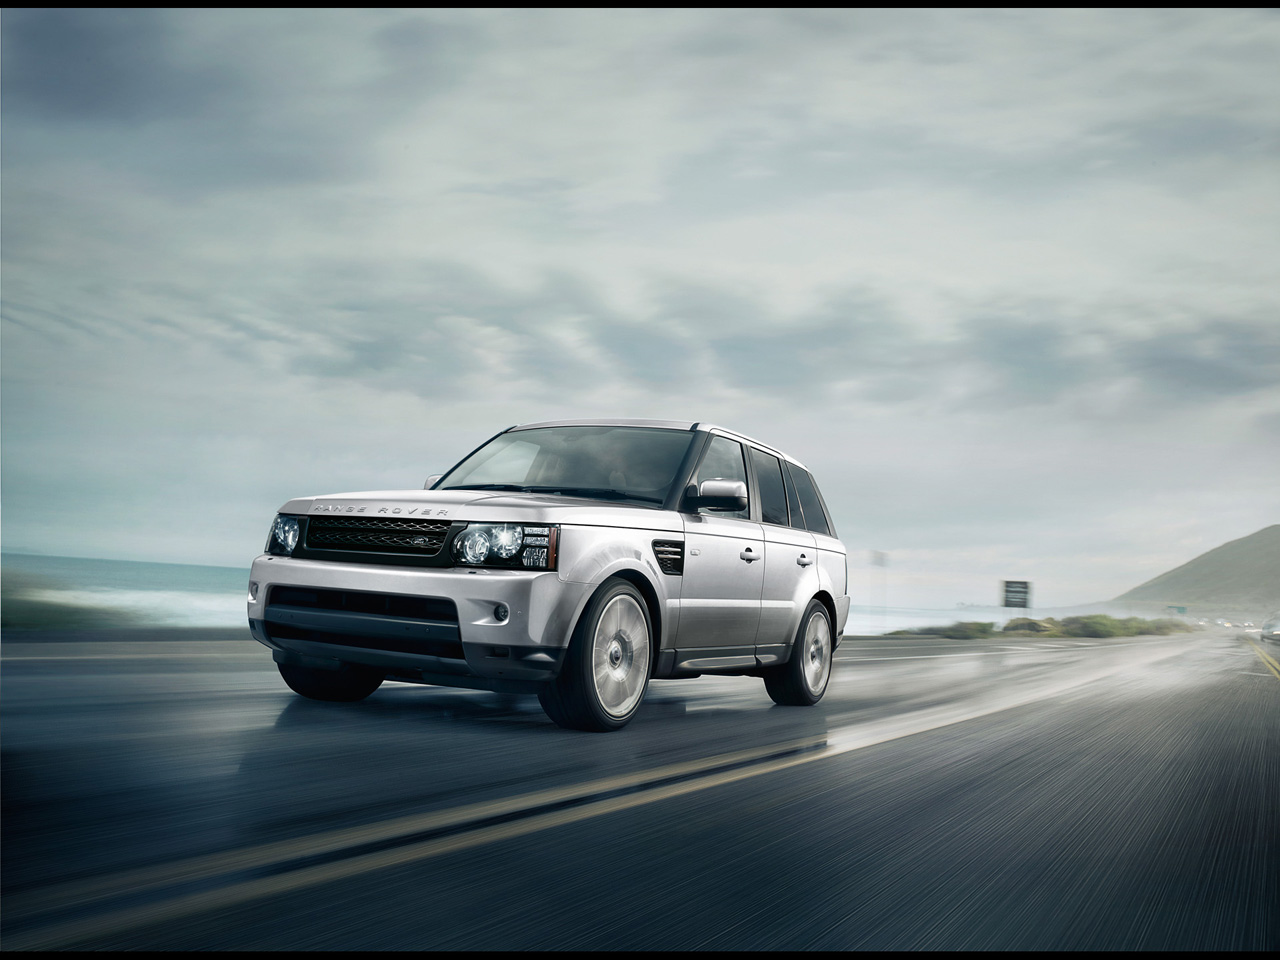 2011 land rover dc100 concept side 2 1280x960 wallpaper -  2013 Land Rover Range Rover Sport Wallpapers